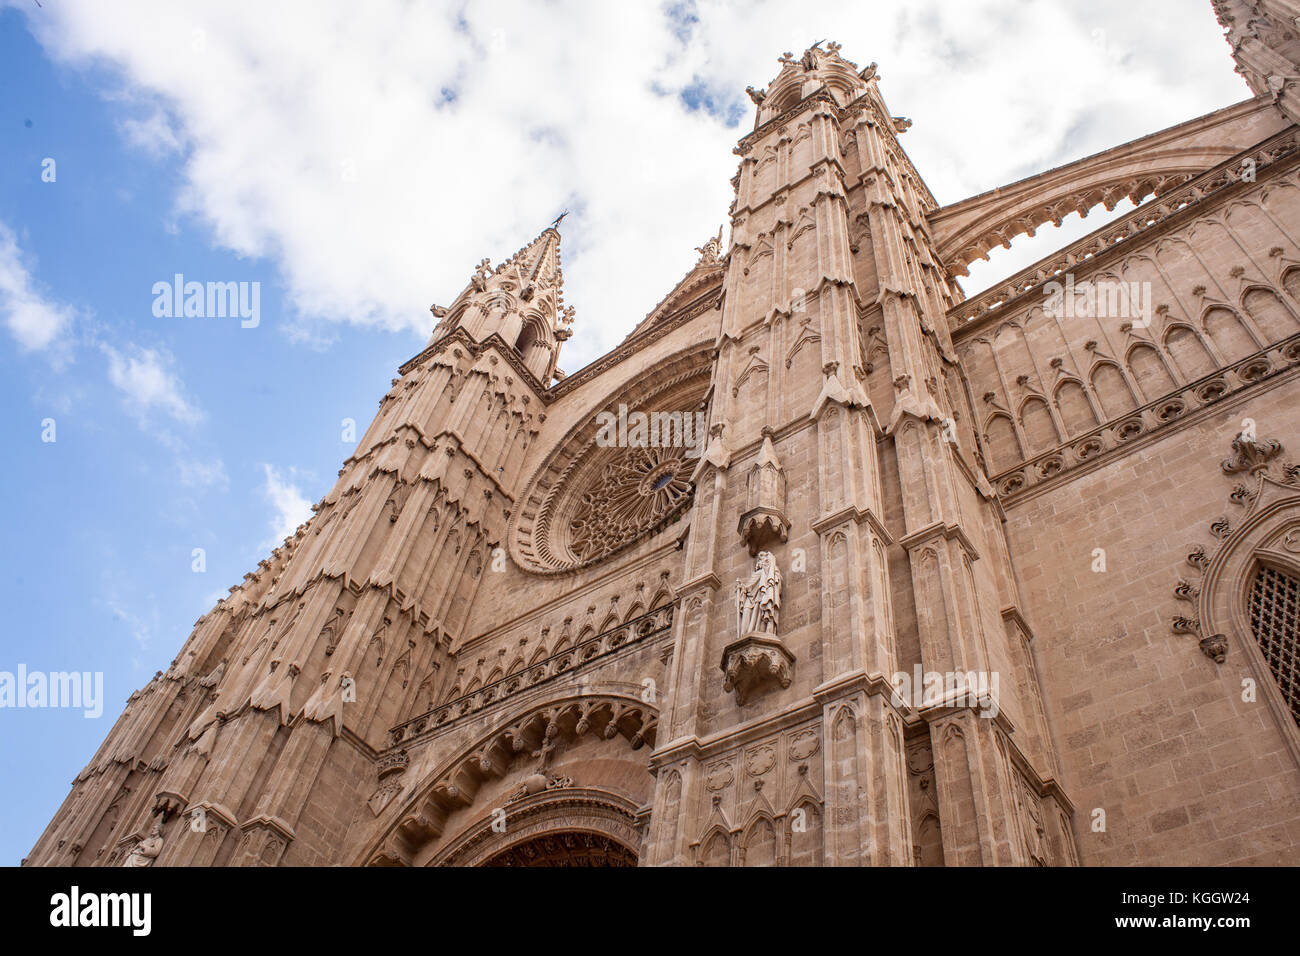 Cathedral Le Seu in Palma de Mallorca, a popular tourist destination, against a blue sky with clouds - Stock Image